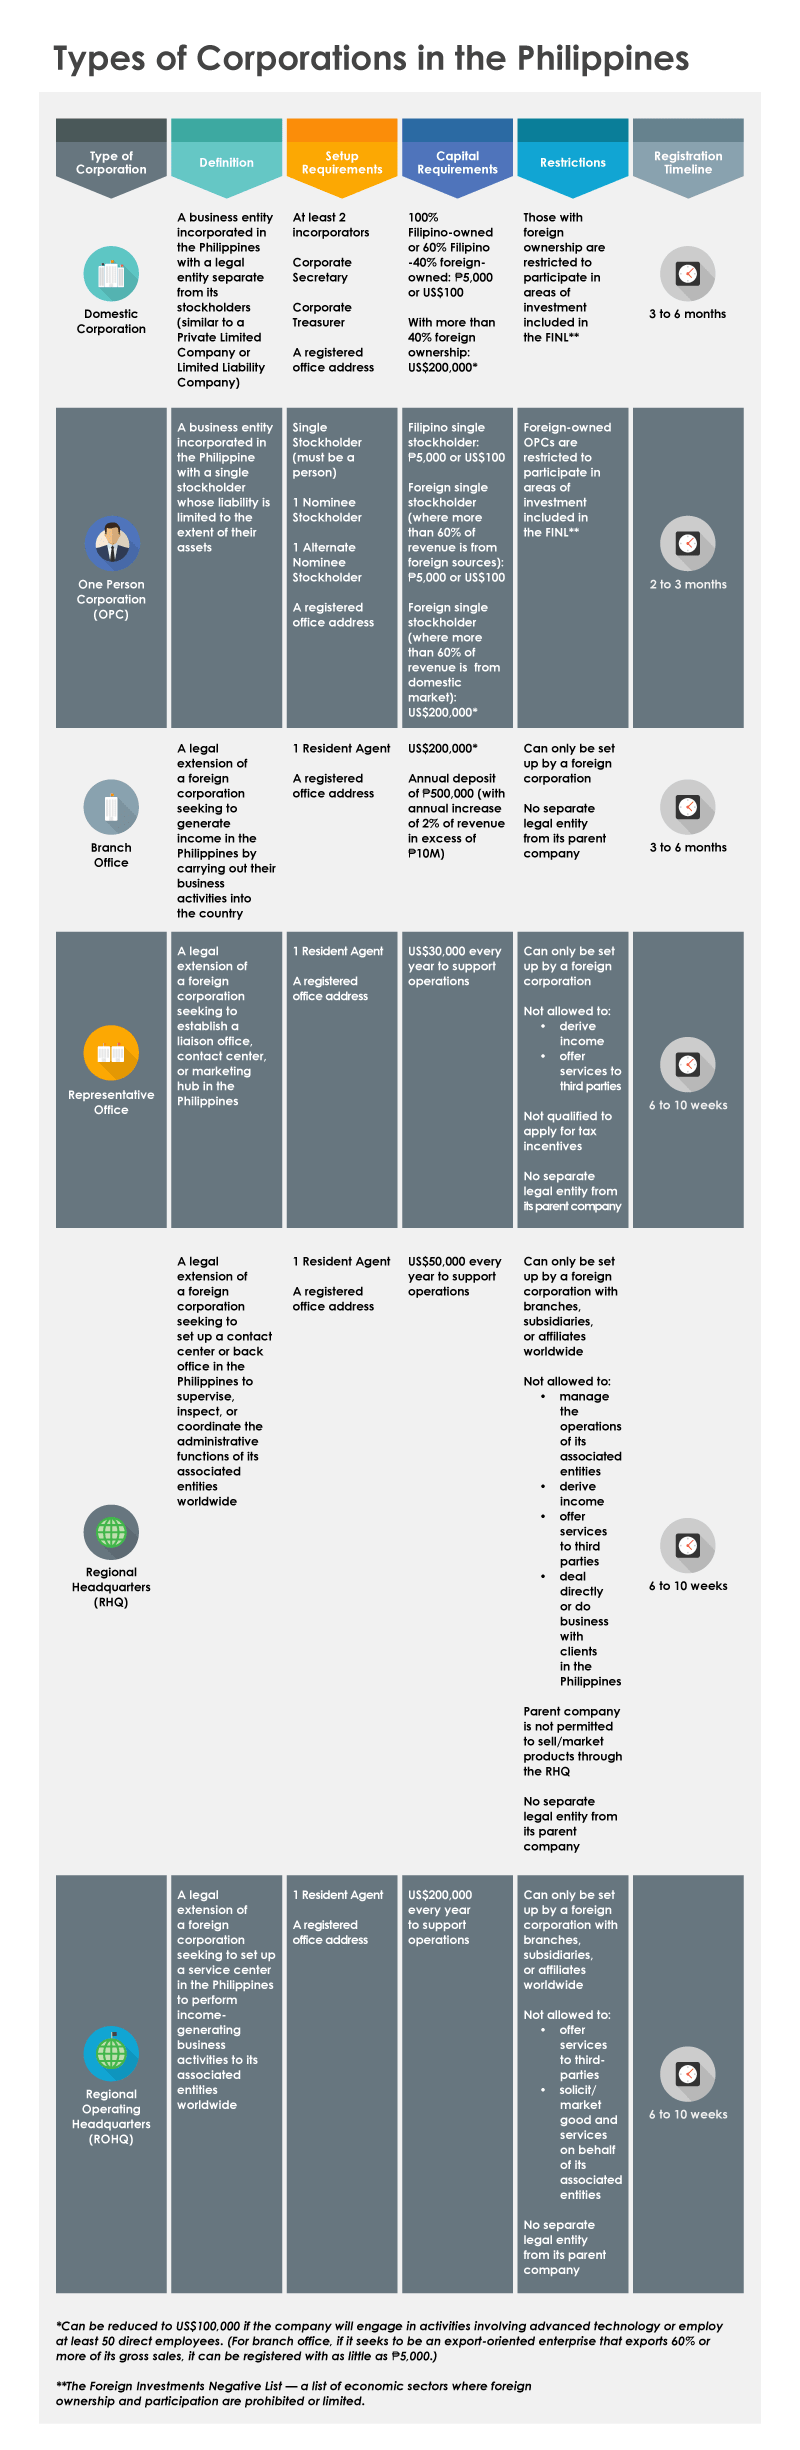 Types of Corporations in the Philippines